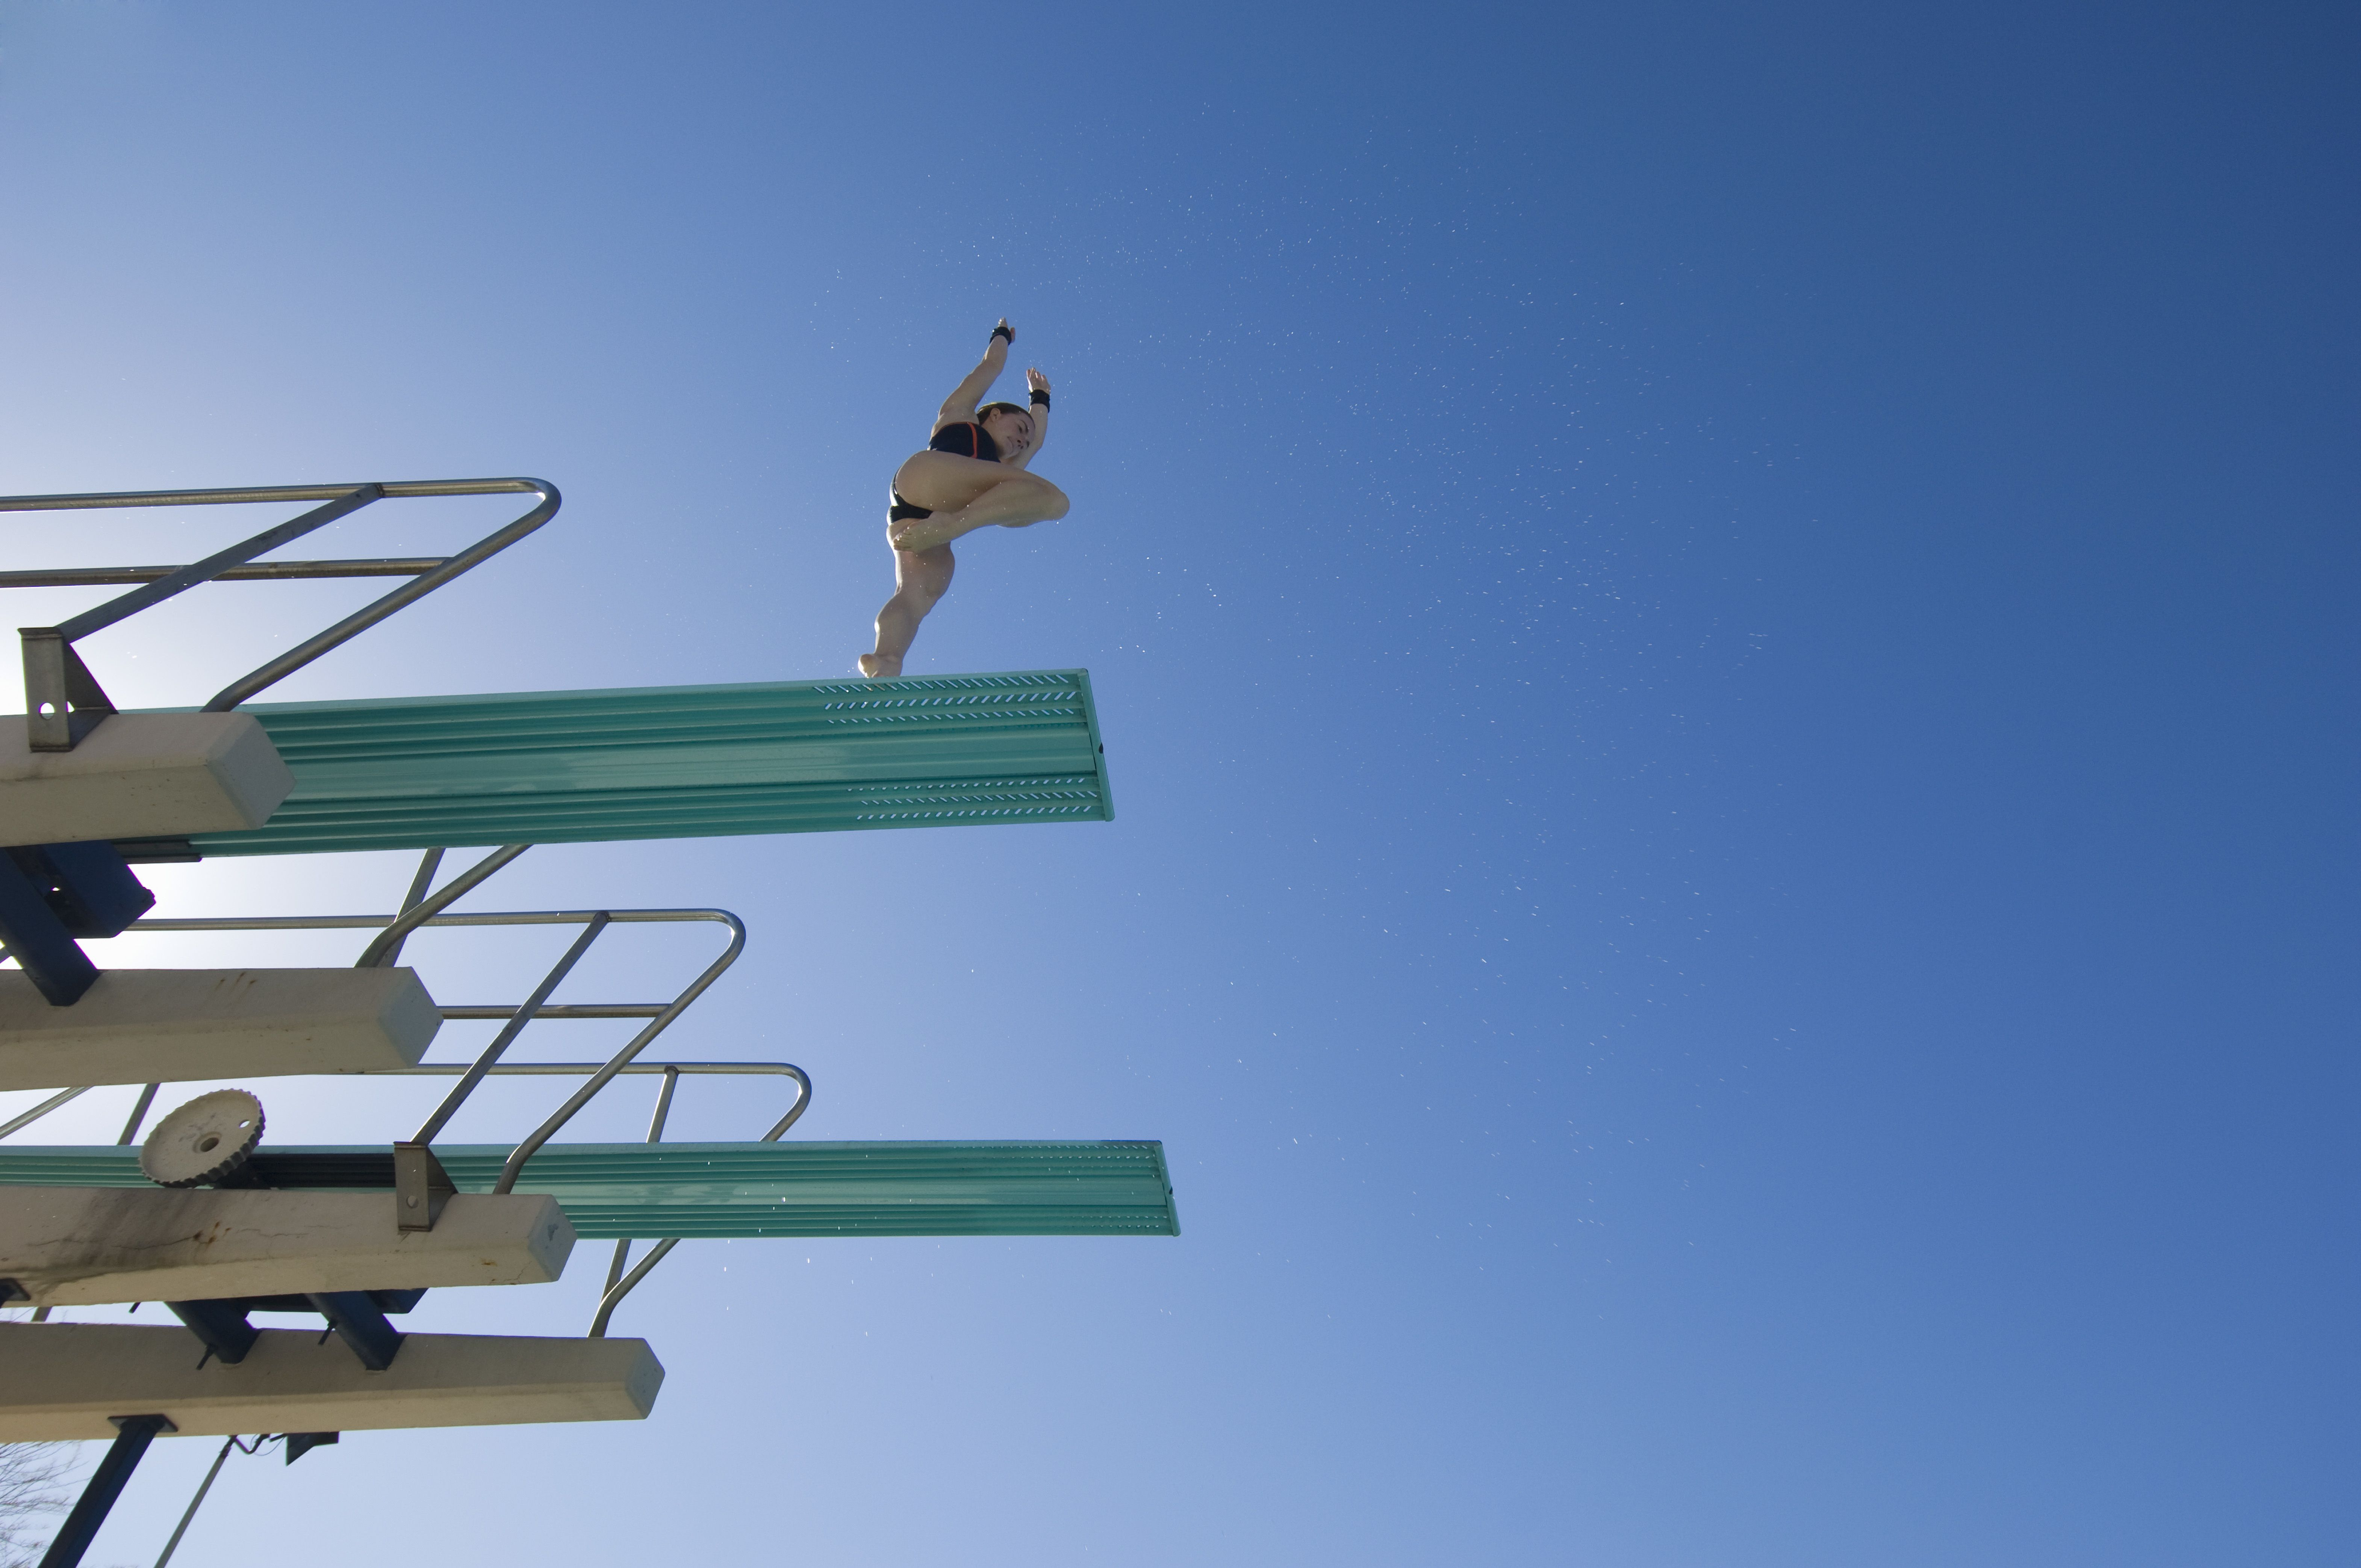 Springboard diving as a metaphor for visualization